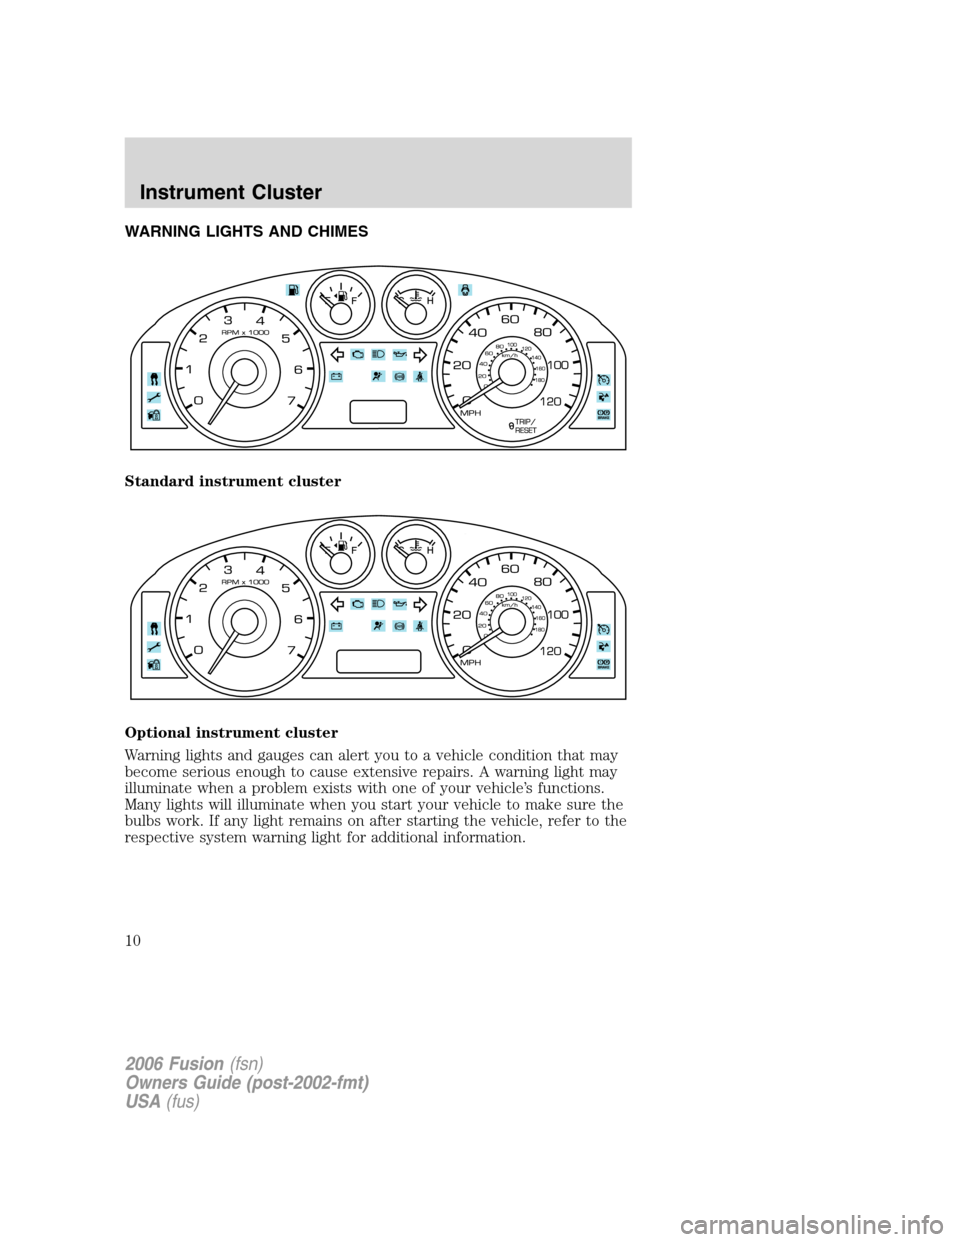 FORD FUSION (AMERICAS) 2006 1.G Owners Manual, Page 10